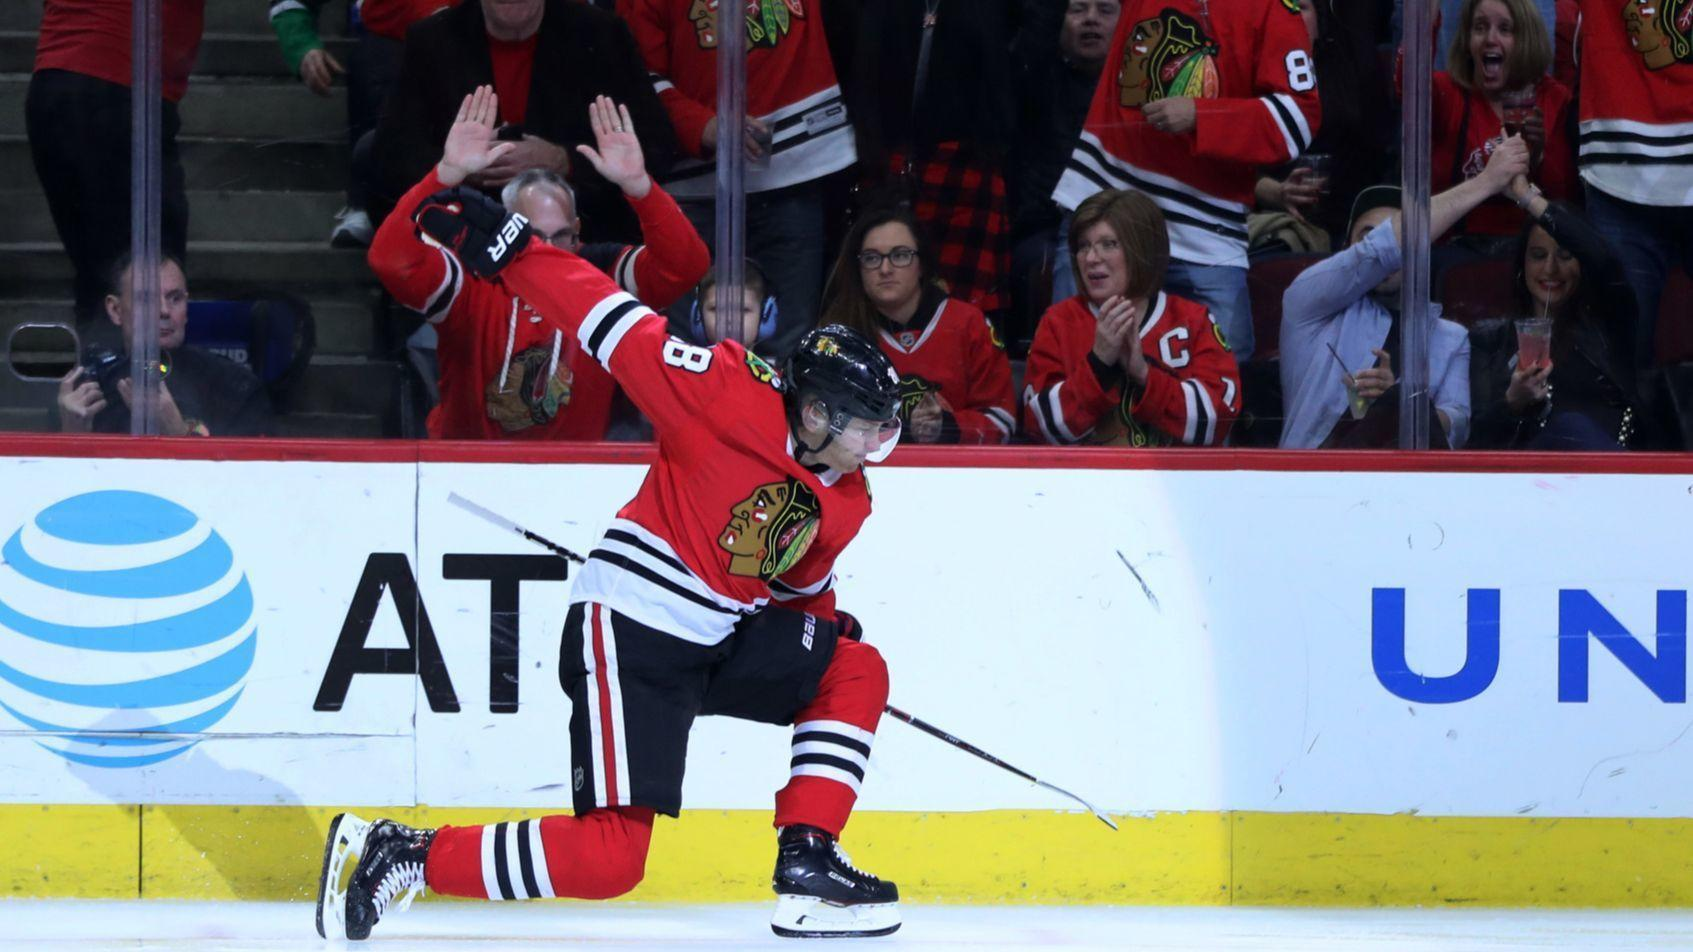 blackhawks scheduled for 19 national tv games, most in nhl - chicago